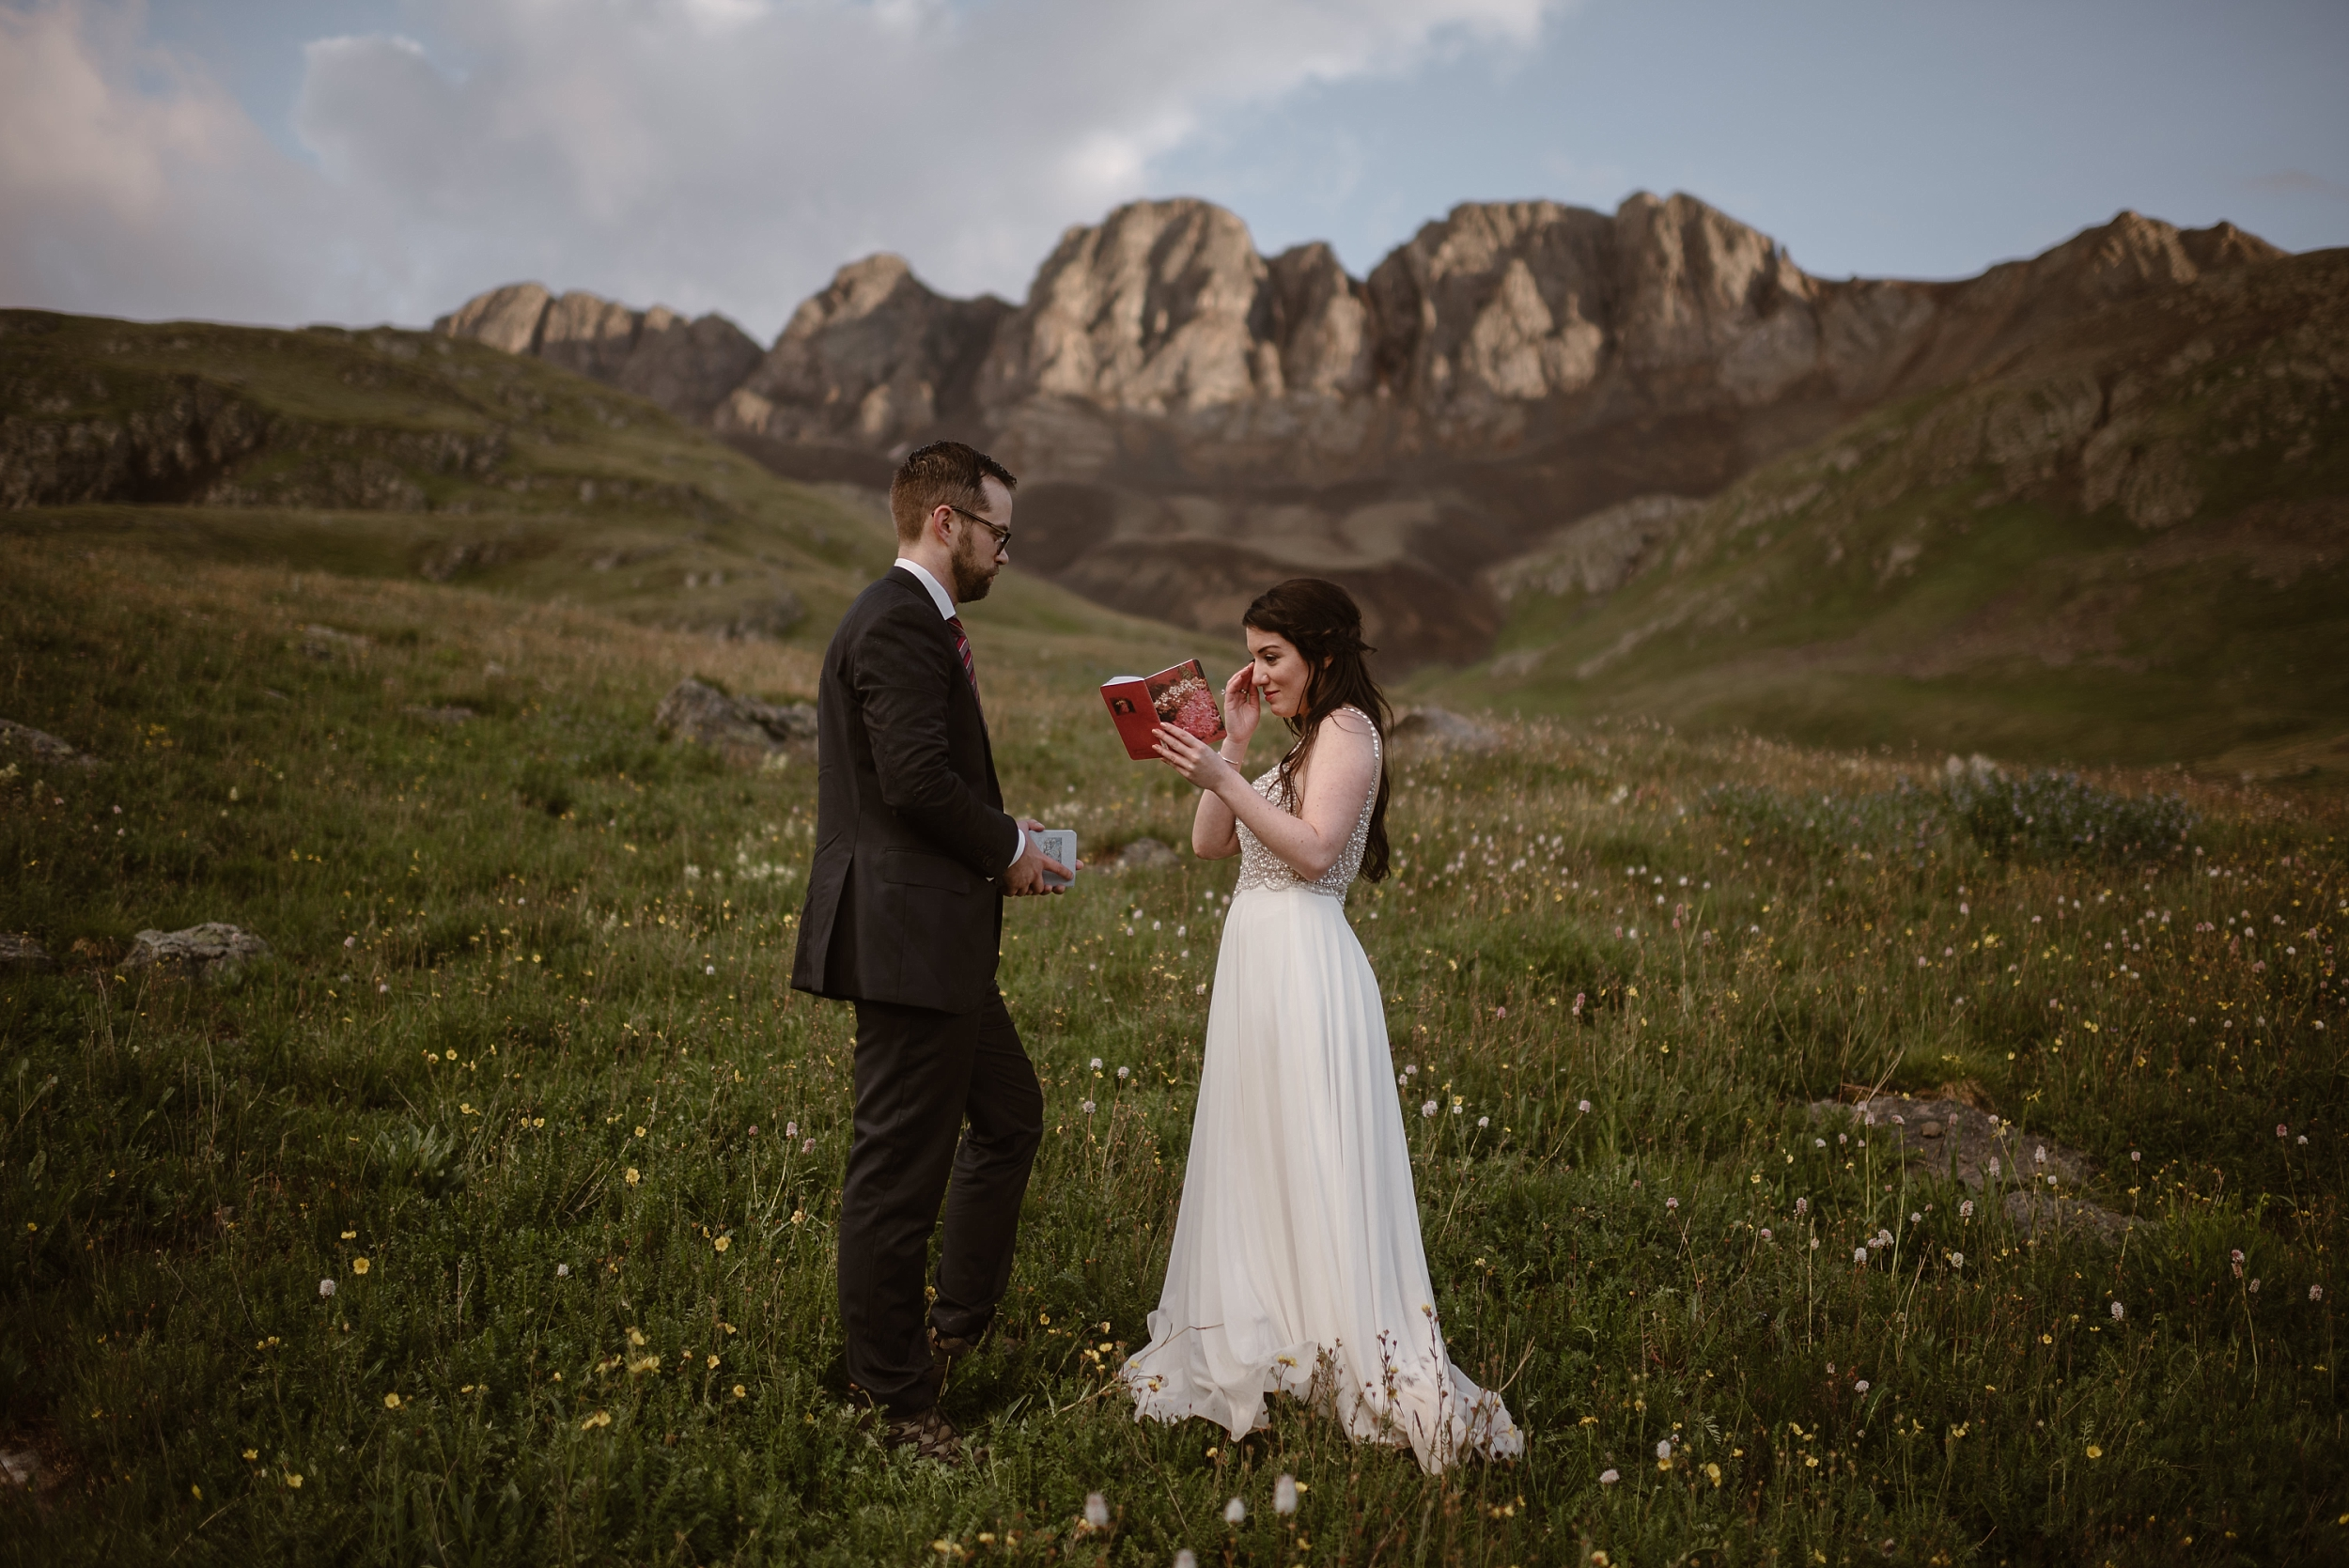 Katie, the bride, reaches up to wipe a tear from her eye as she reads her vows to Logan, the groom. The two stand in a meadow at a mountain basin in Ouray, Colorado. Wildflowers are in bloom and the sandy-colored mountains loom in the background. Katie and Logan chose this location for their destination elopement because it required off road driving to get there.